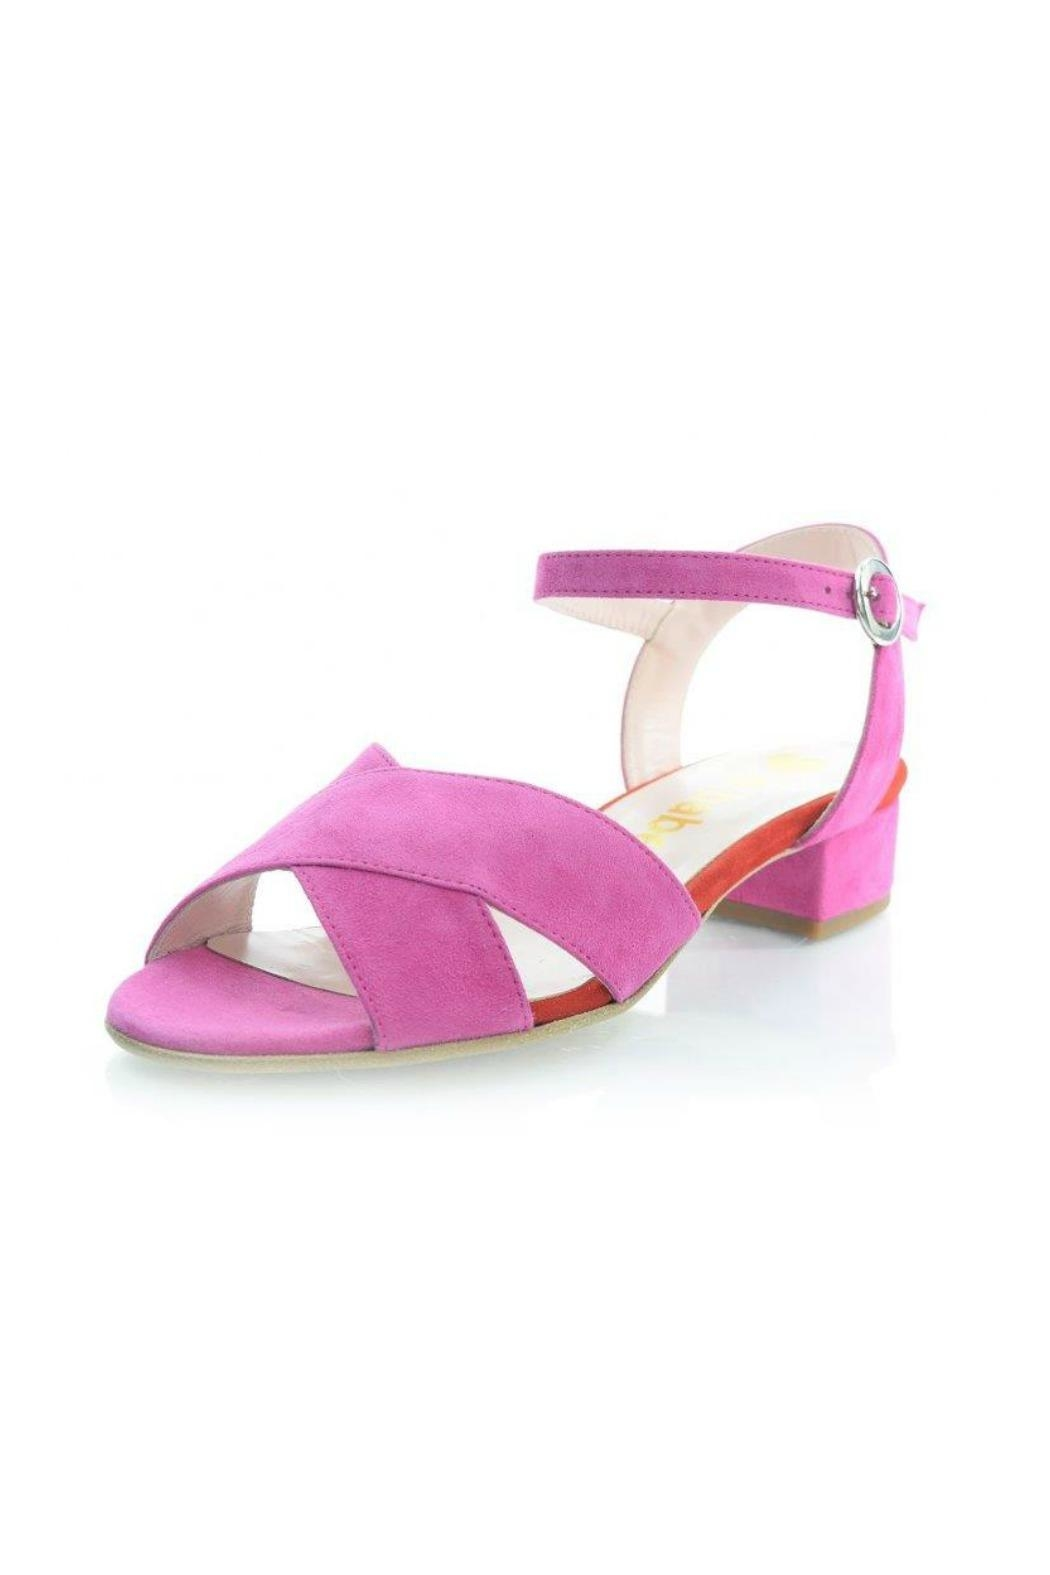 Le Babe  Pink Suede Sandal - Main Image